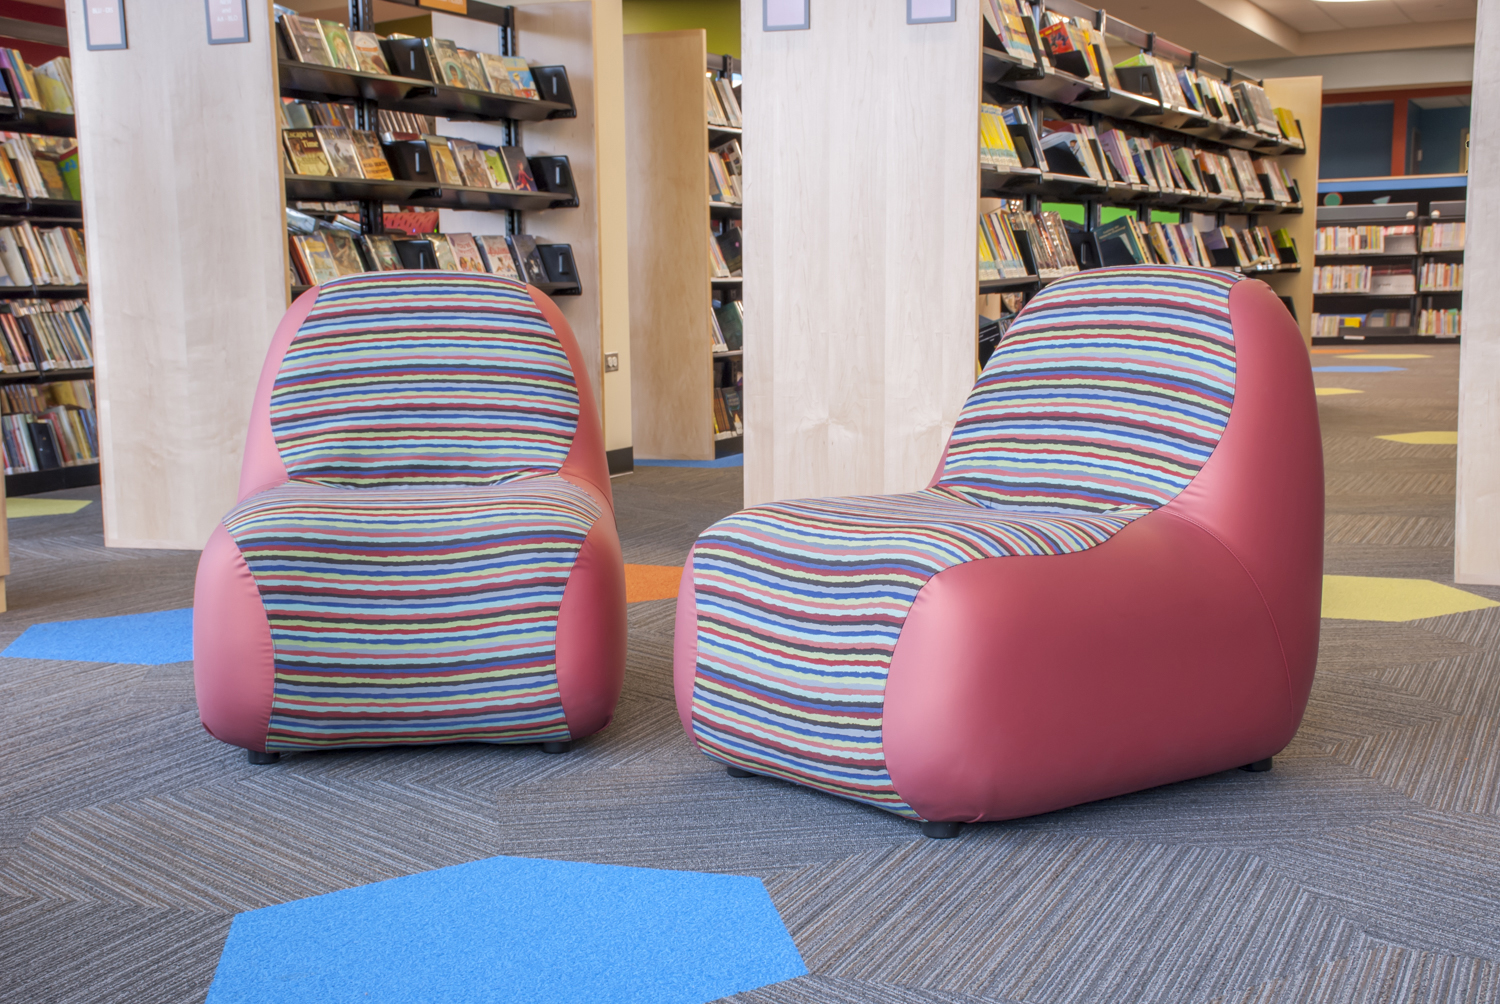 Blob chairs at Ela Area Public Library